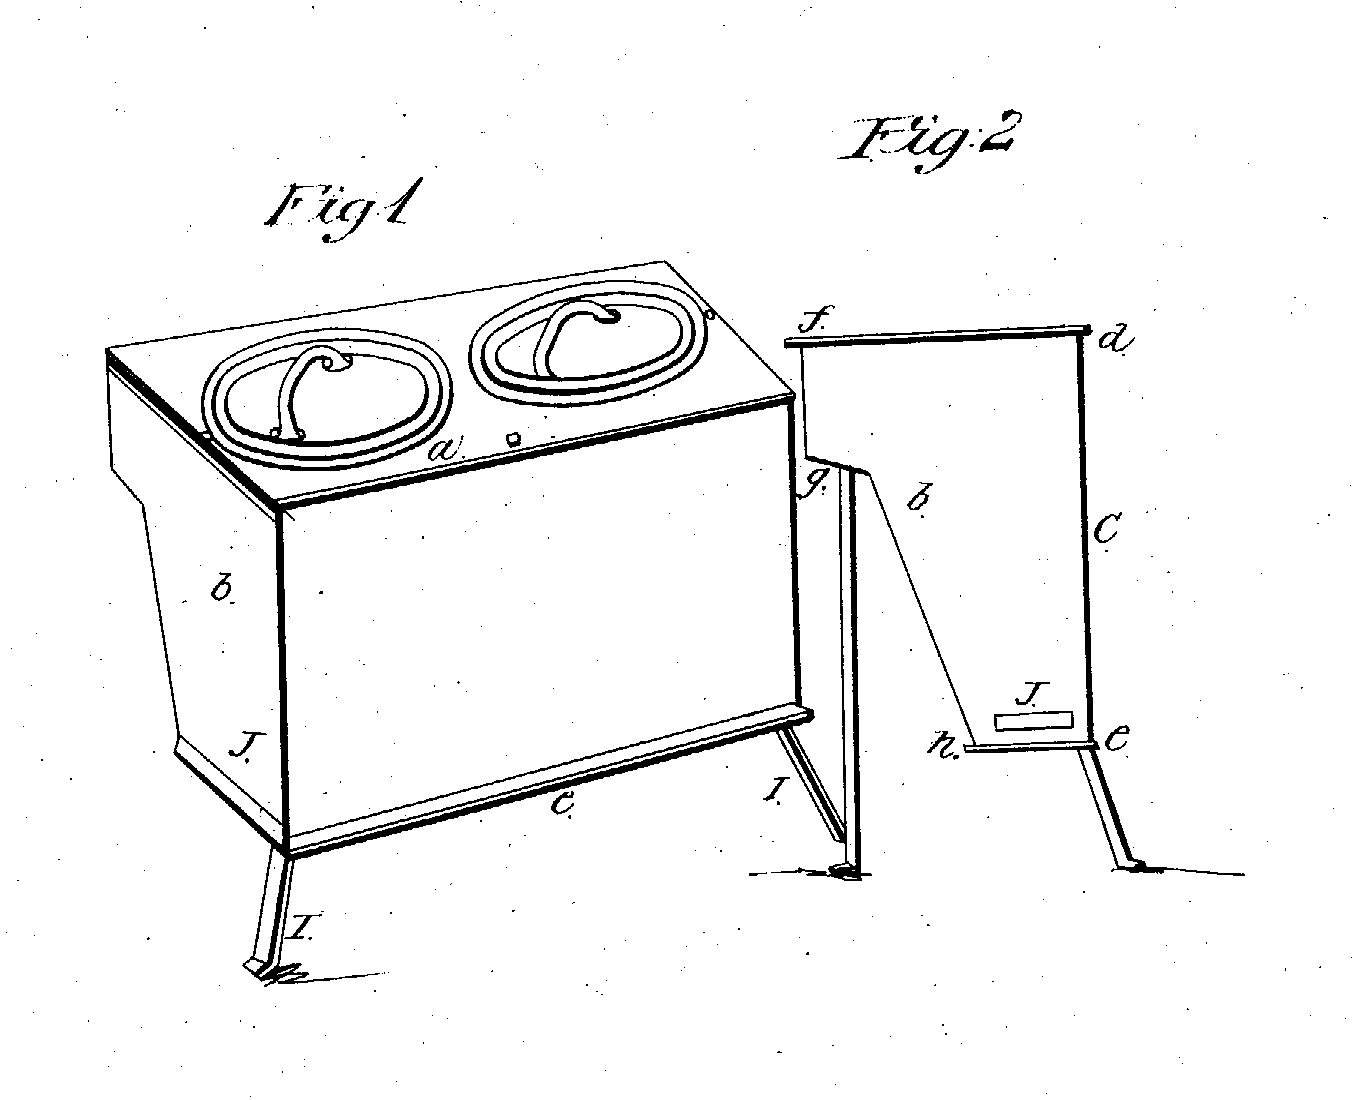 A Stove Less Ordinary Vermont Stove Inventors Inventions